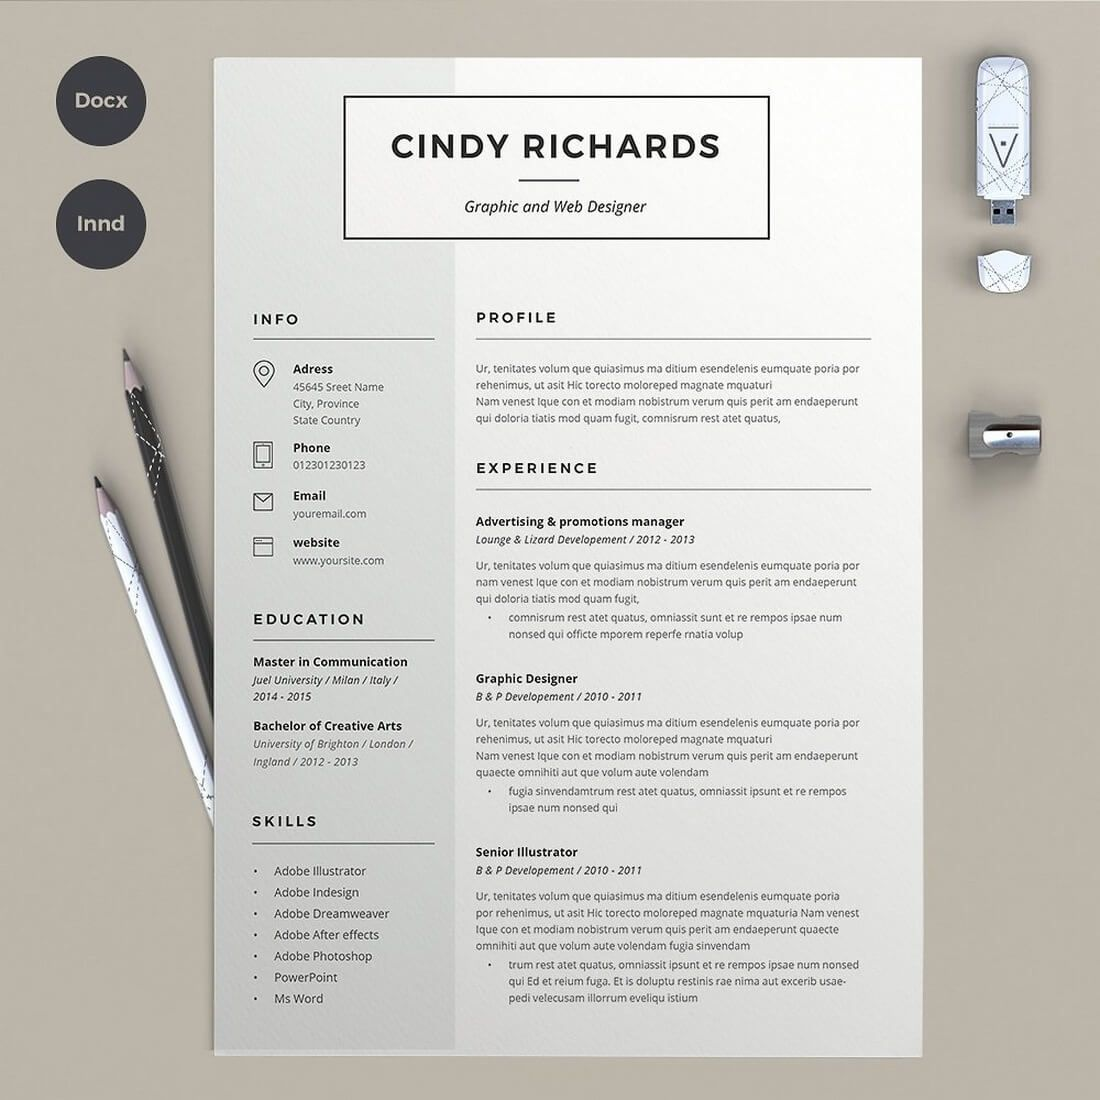 50+ Best CV & Resume Templates 2020 Resume layout